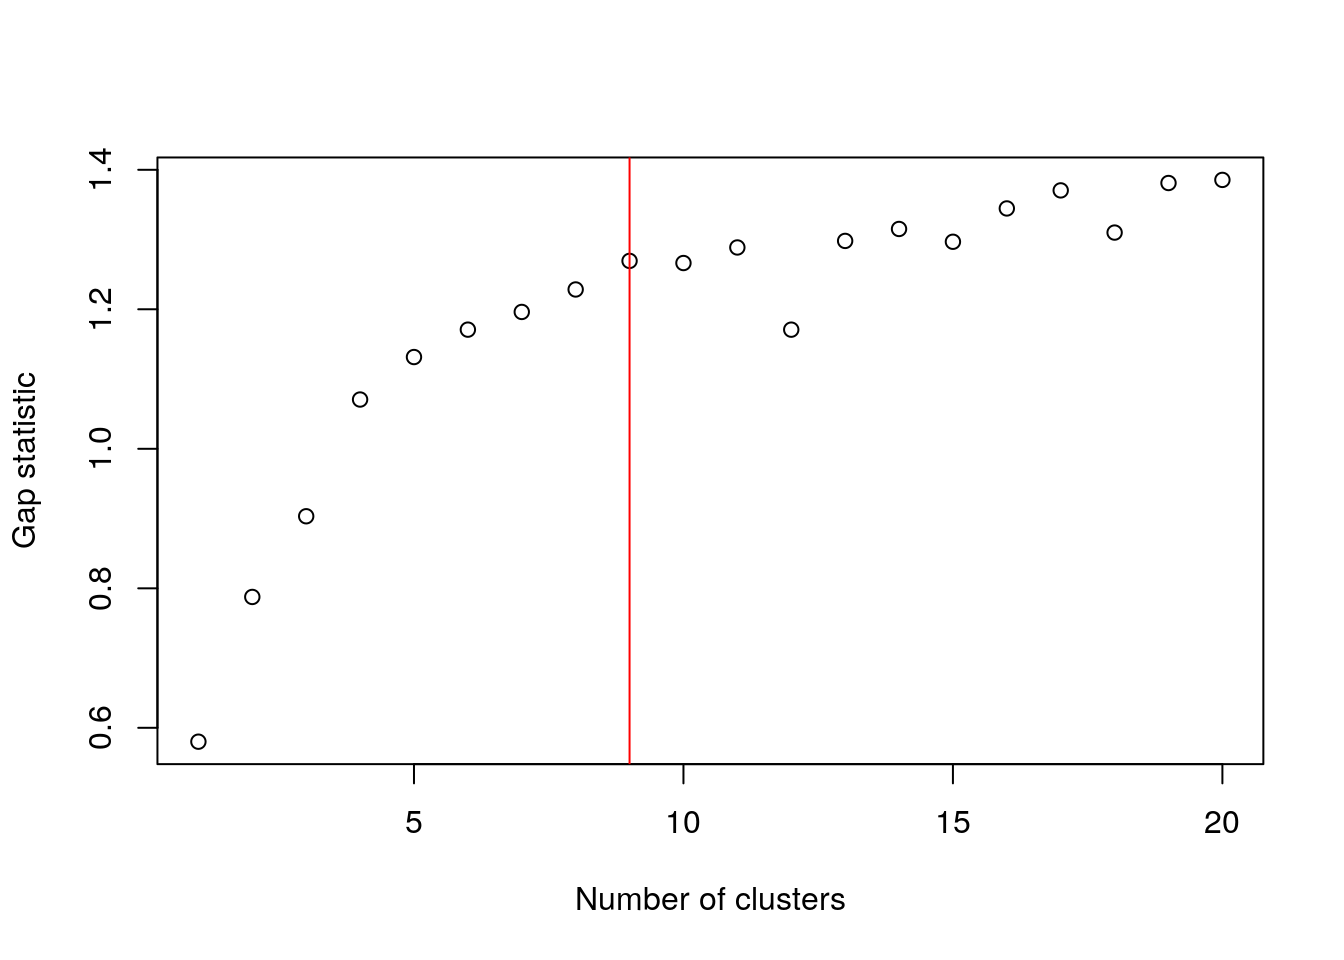 Gap statistic with respect to increasing number of $k$-means clusters in the 10X PBMC dataset. The red line represents the chosen $k$.